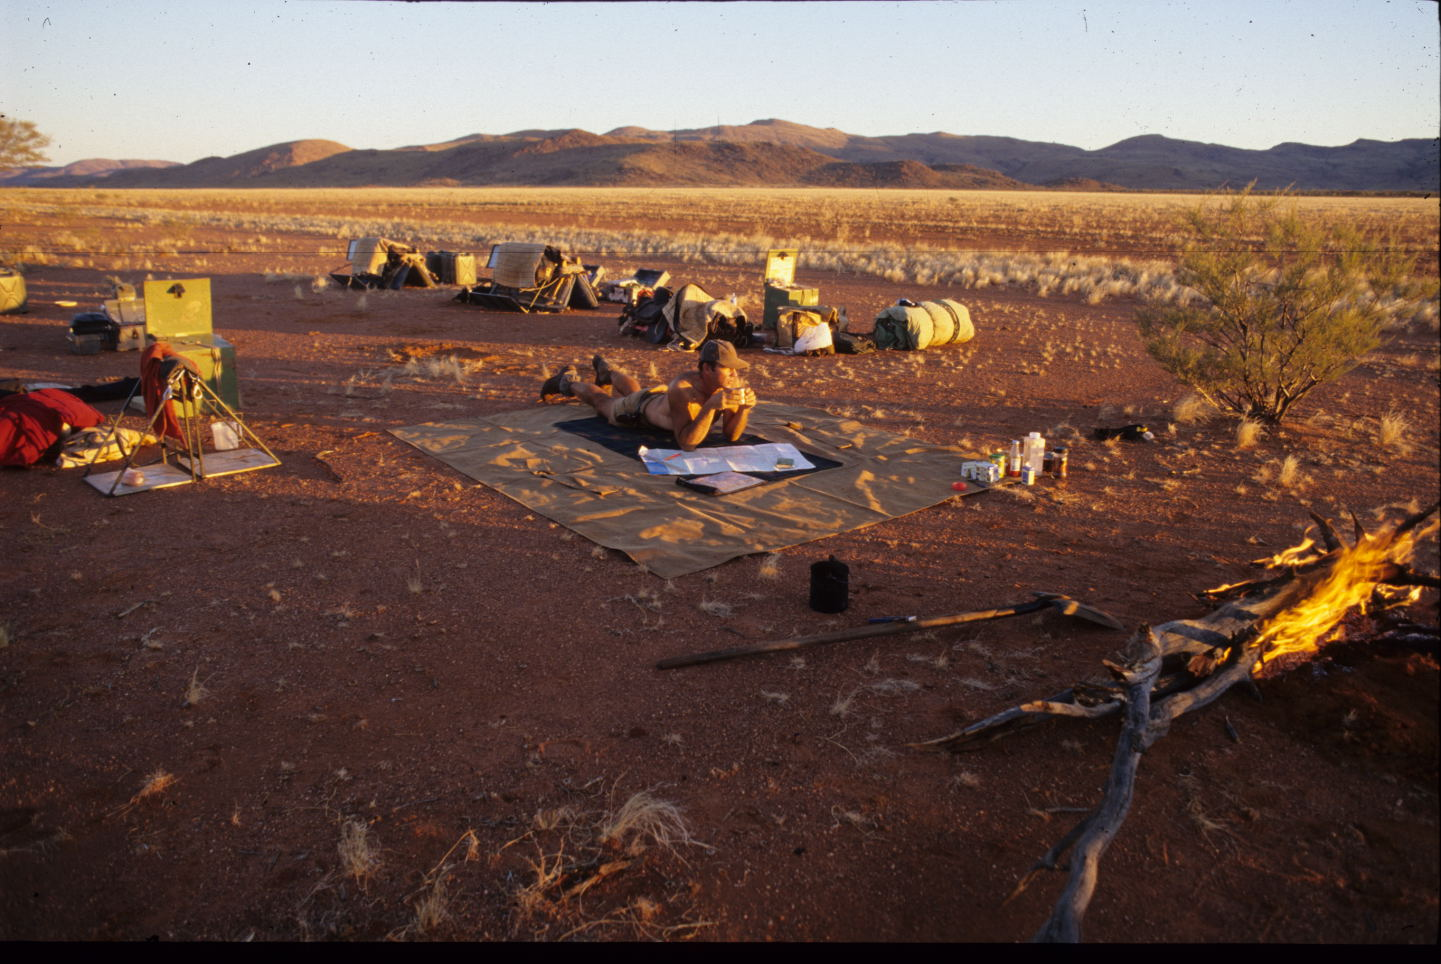 Afternoon cuppa, West MacDonnell Ranges, NT.